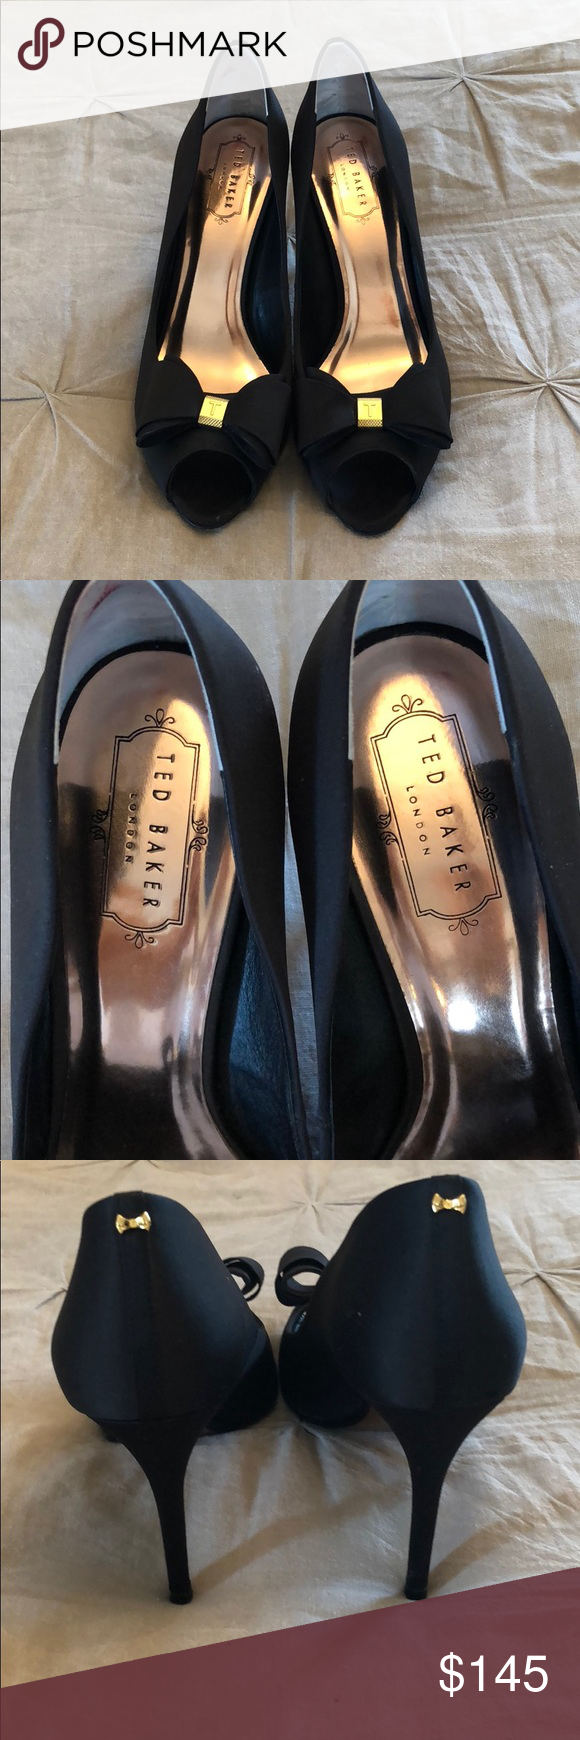 bd6b65121e0f81 Ted Baker peep toe pumps with bow Ted Baker black peep toe pumps with bow.  Worn once. Beautiful shoes! Ted Baker London Shoes Heels